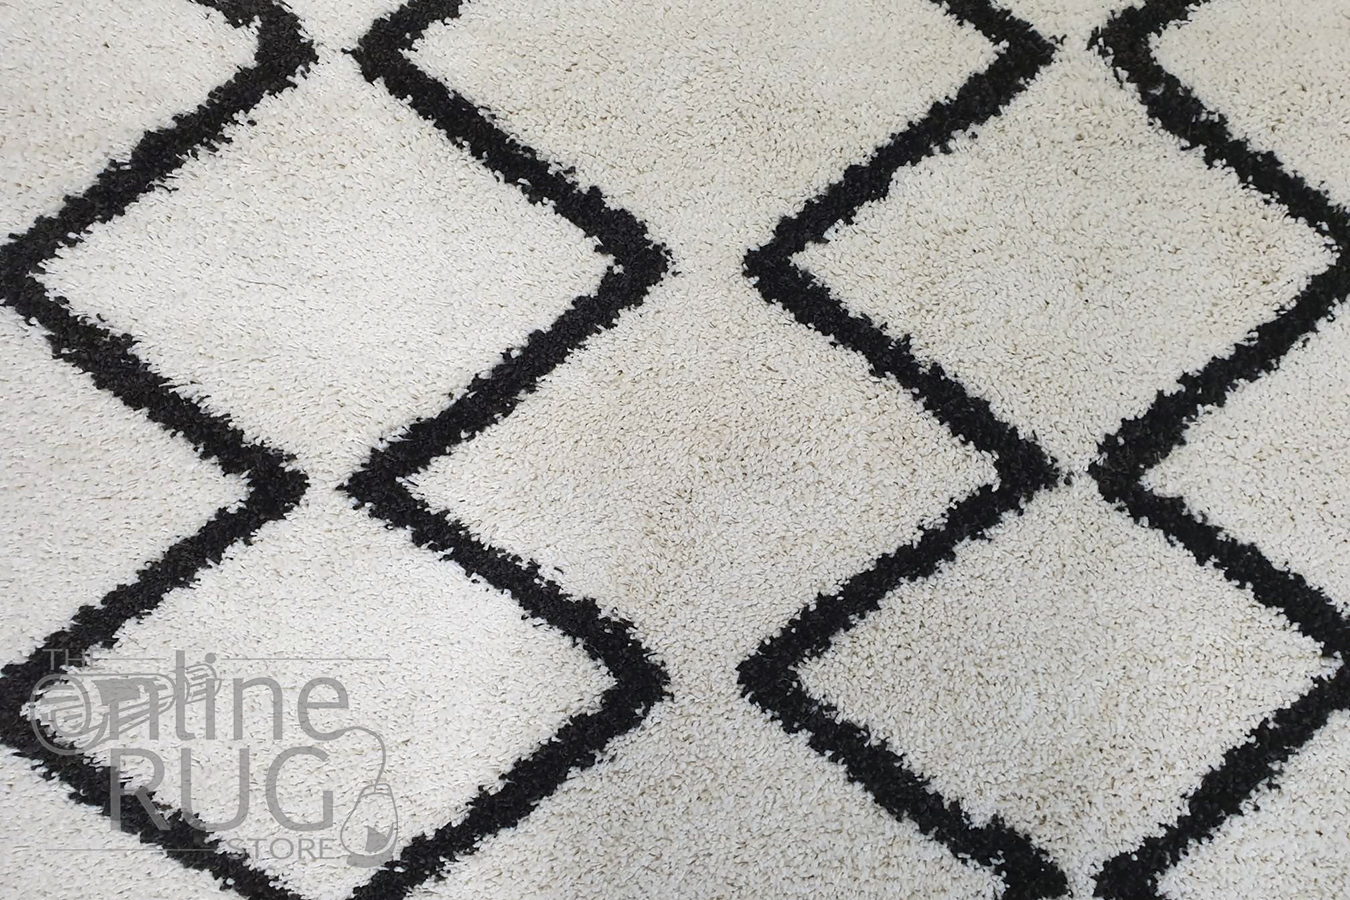 Saffia Natural Off-White Zigzag Plush Boho Rug